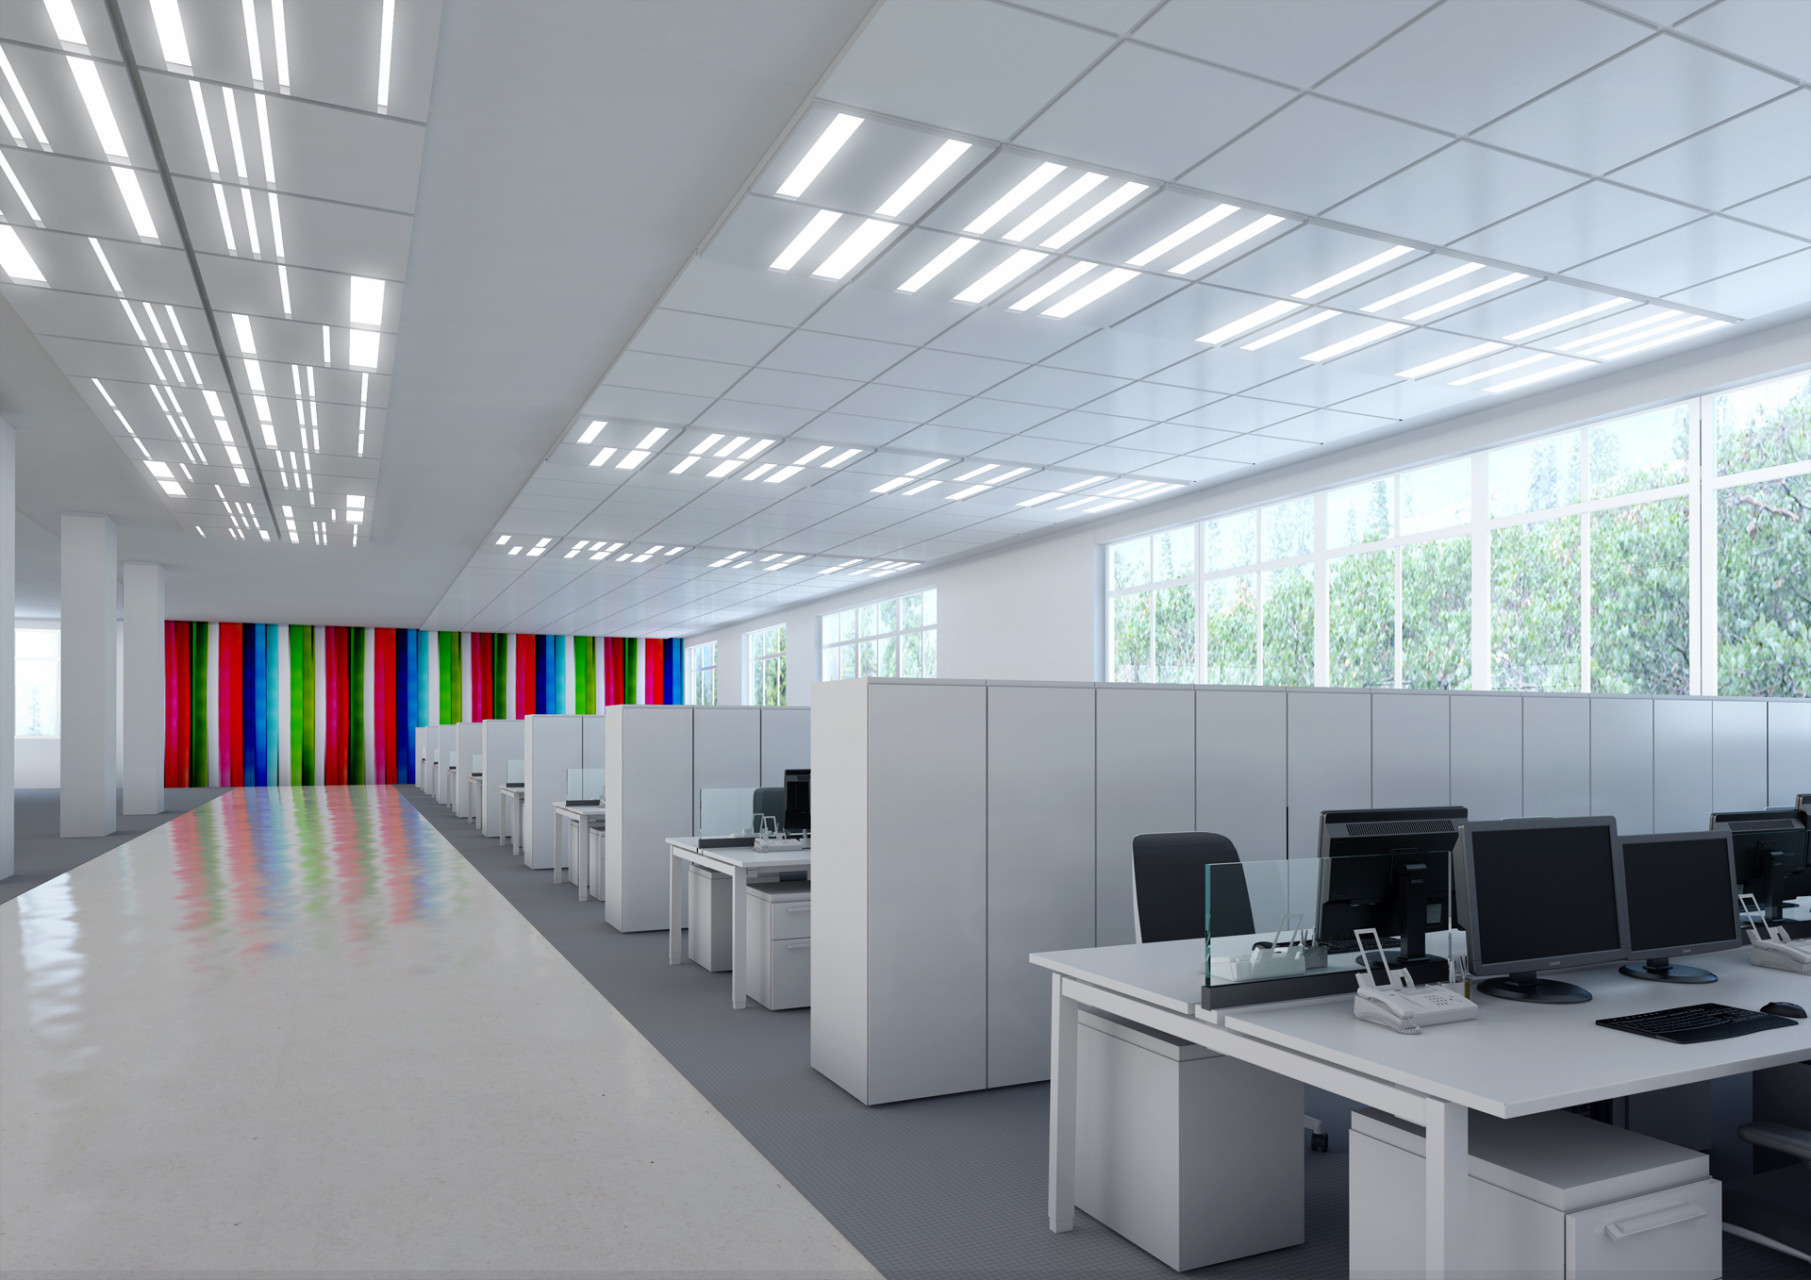 Office Lighting Led Panel News And Office Lighting Blog Led Panel Store